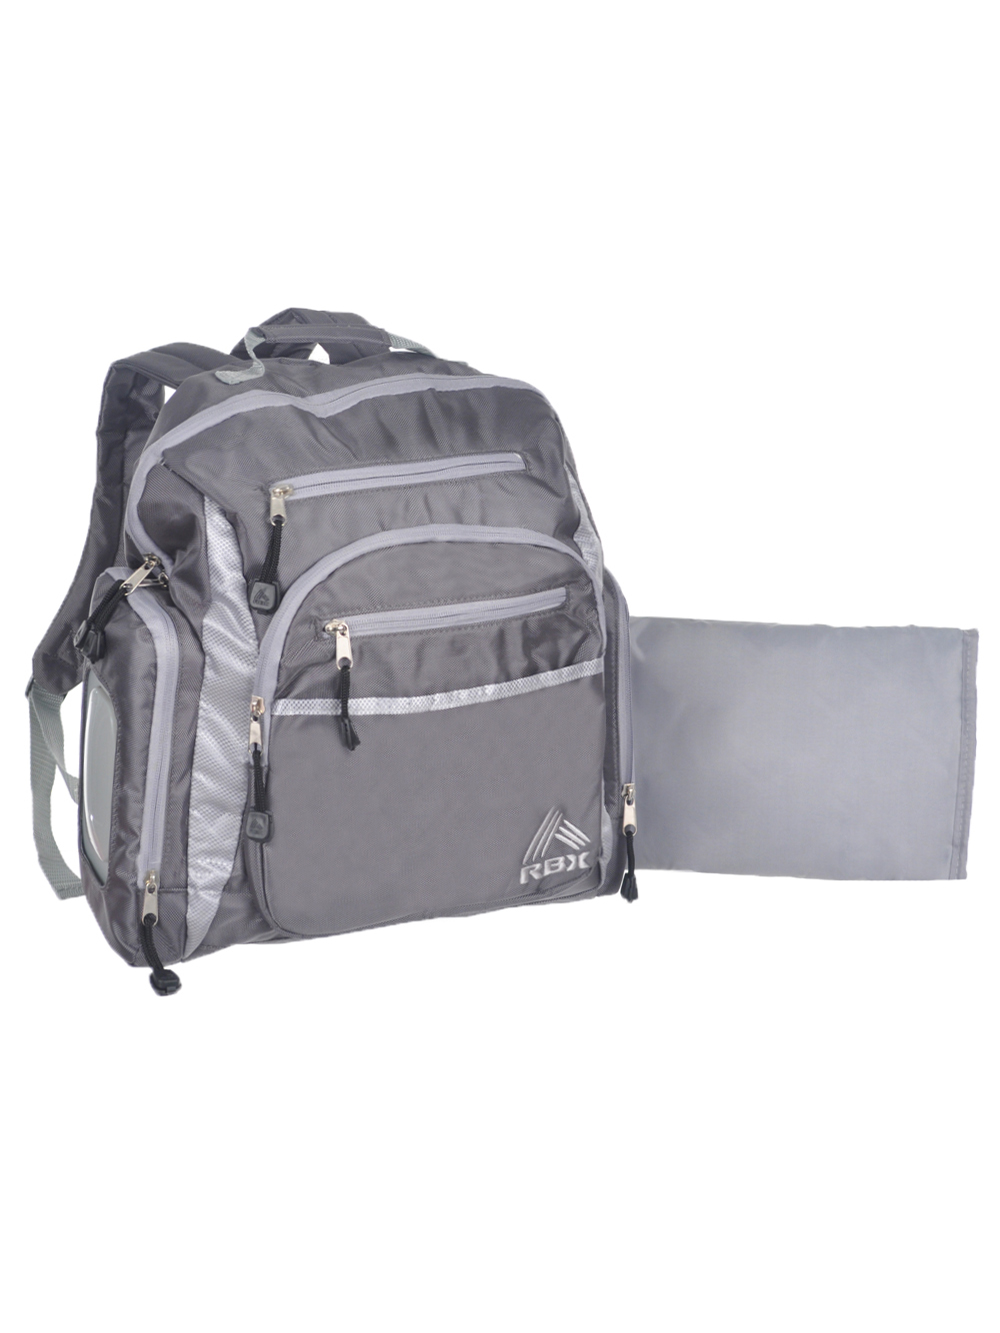 RBX Large Backpack Diaper Bag with Changing Pad - gray, one size